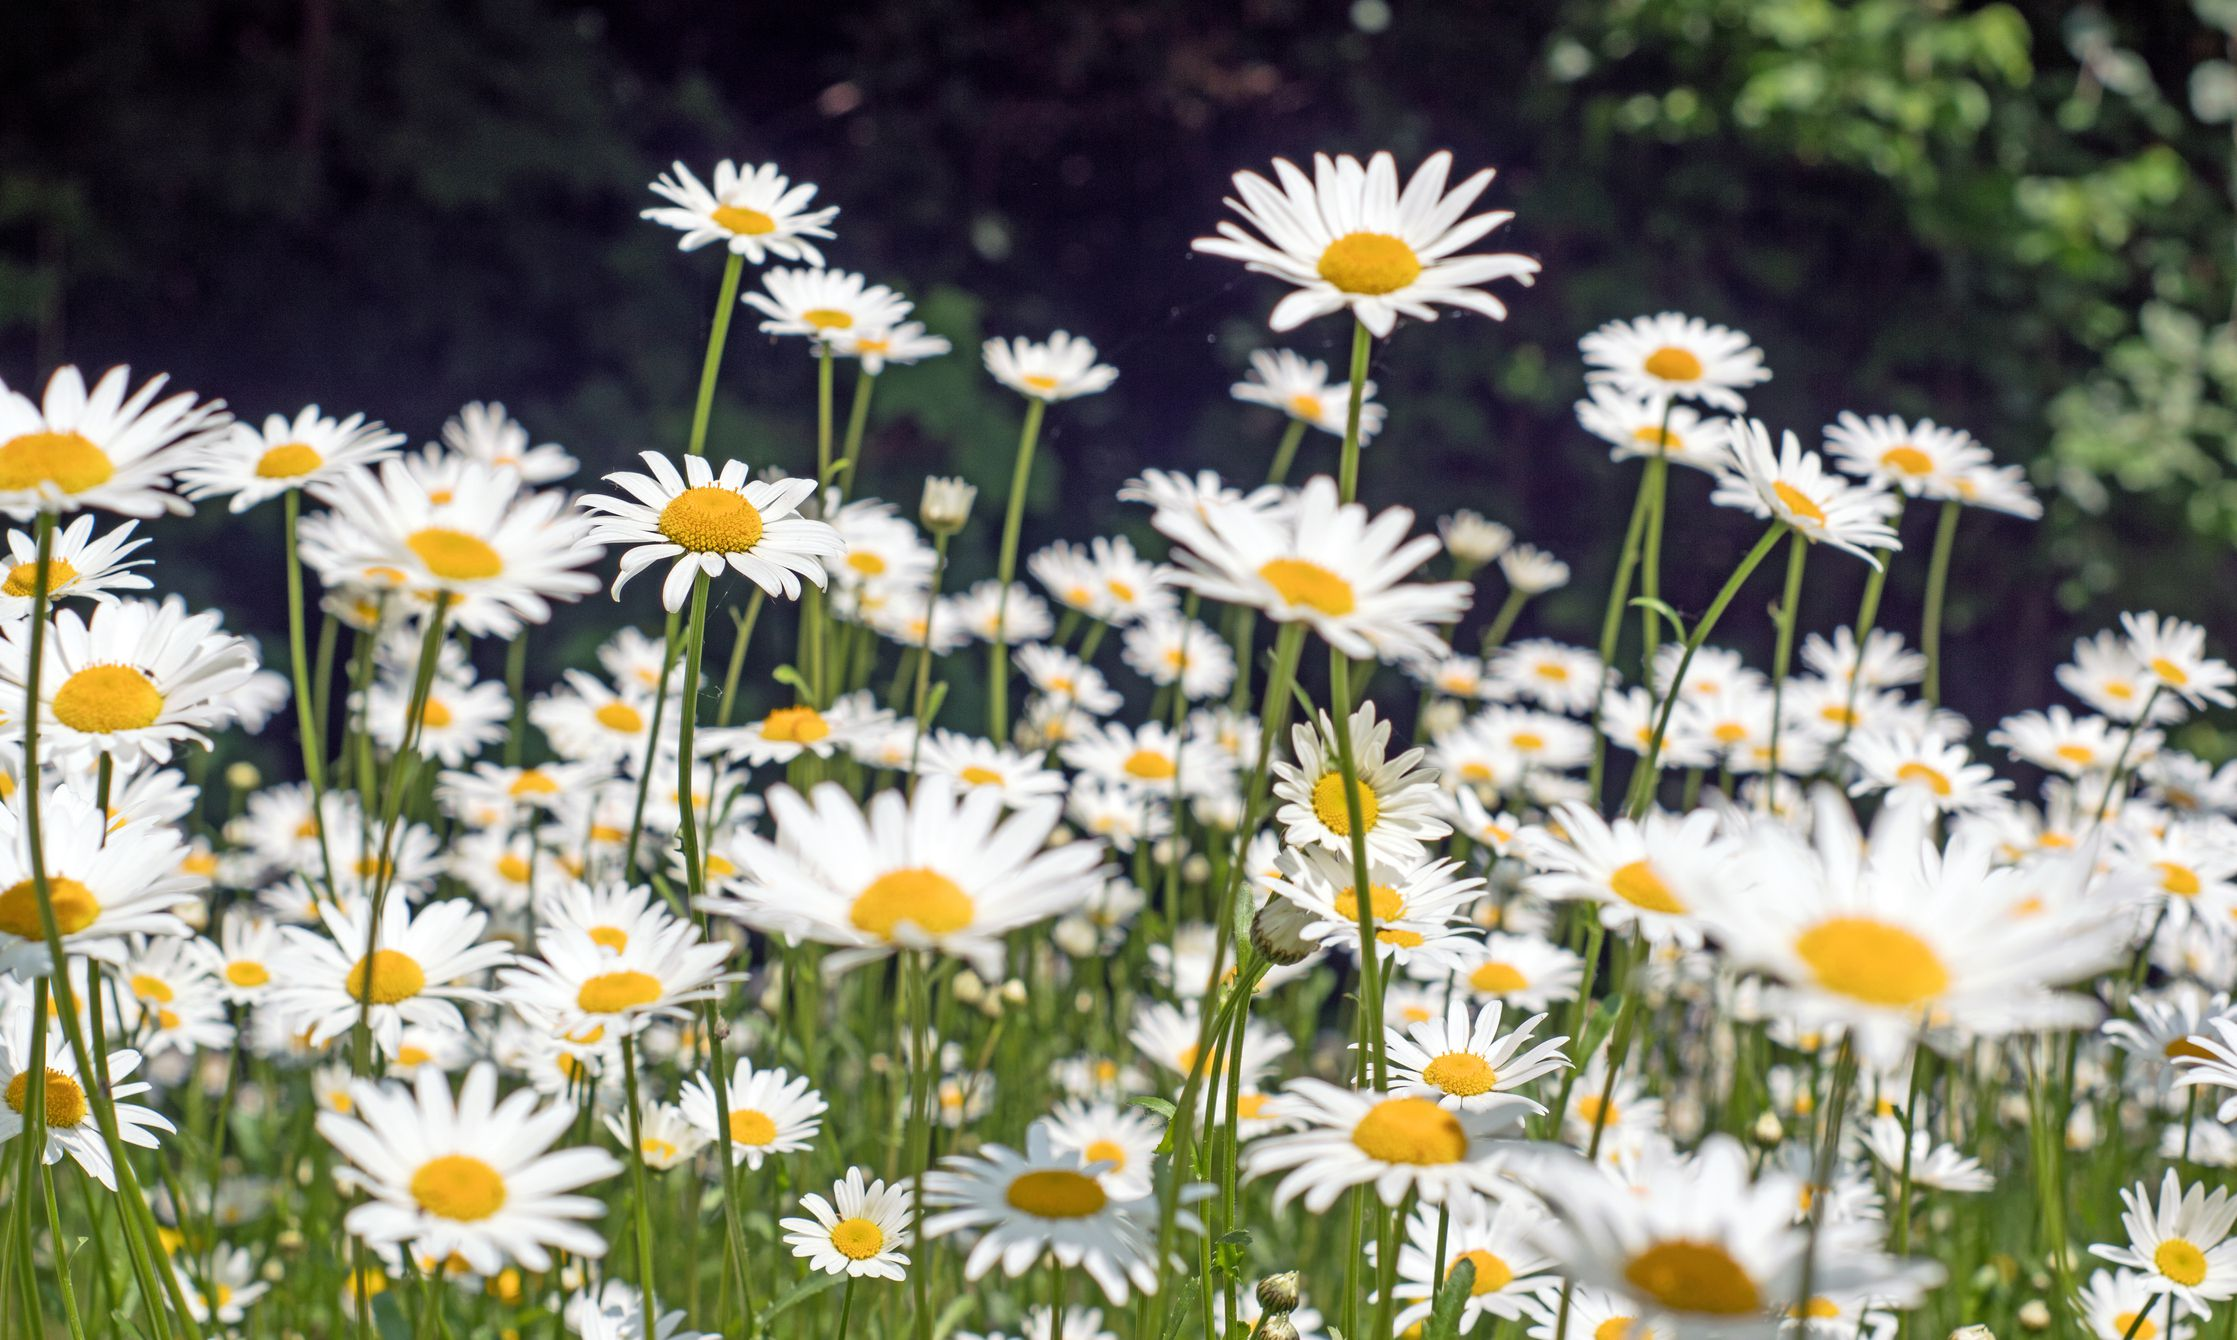 Selecting The Right Daisies For Your Flower Garden